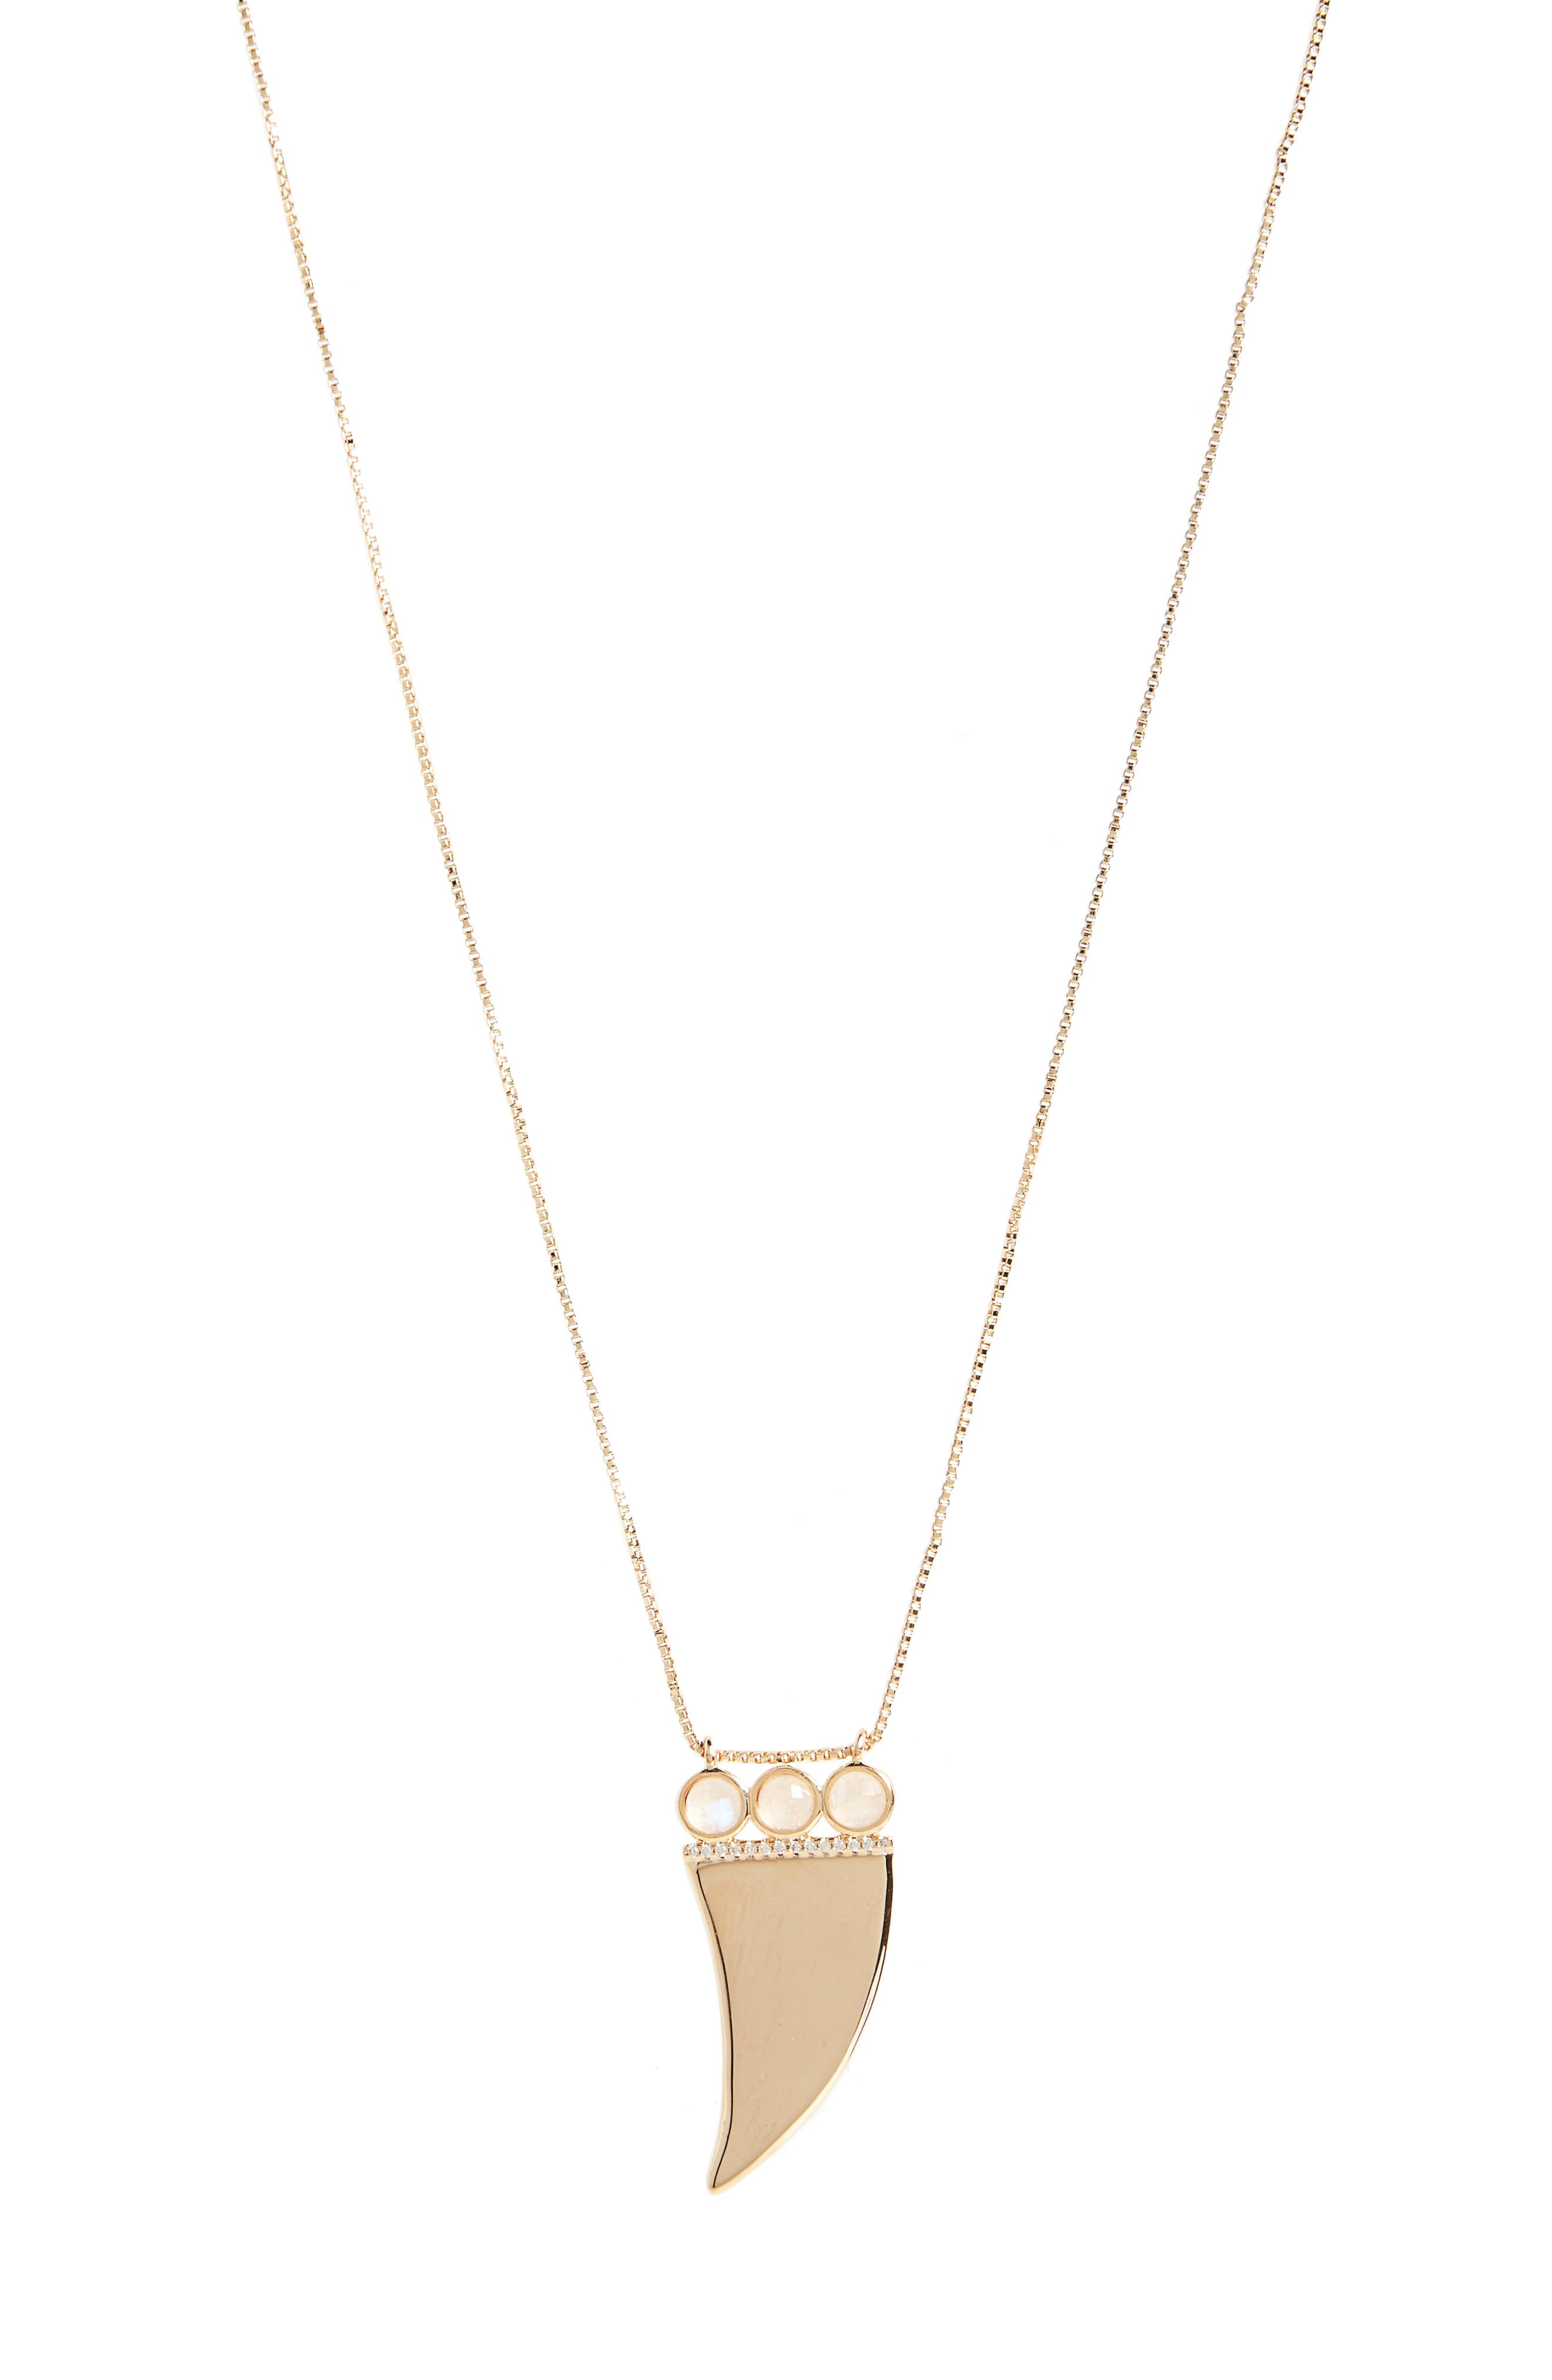 Hendrix Horn Pendant Necklace,                         Main,                         color, Moonstone/ Gold